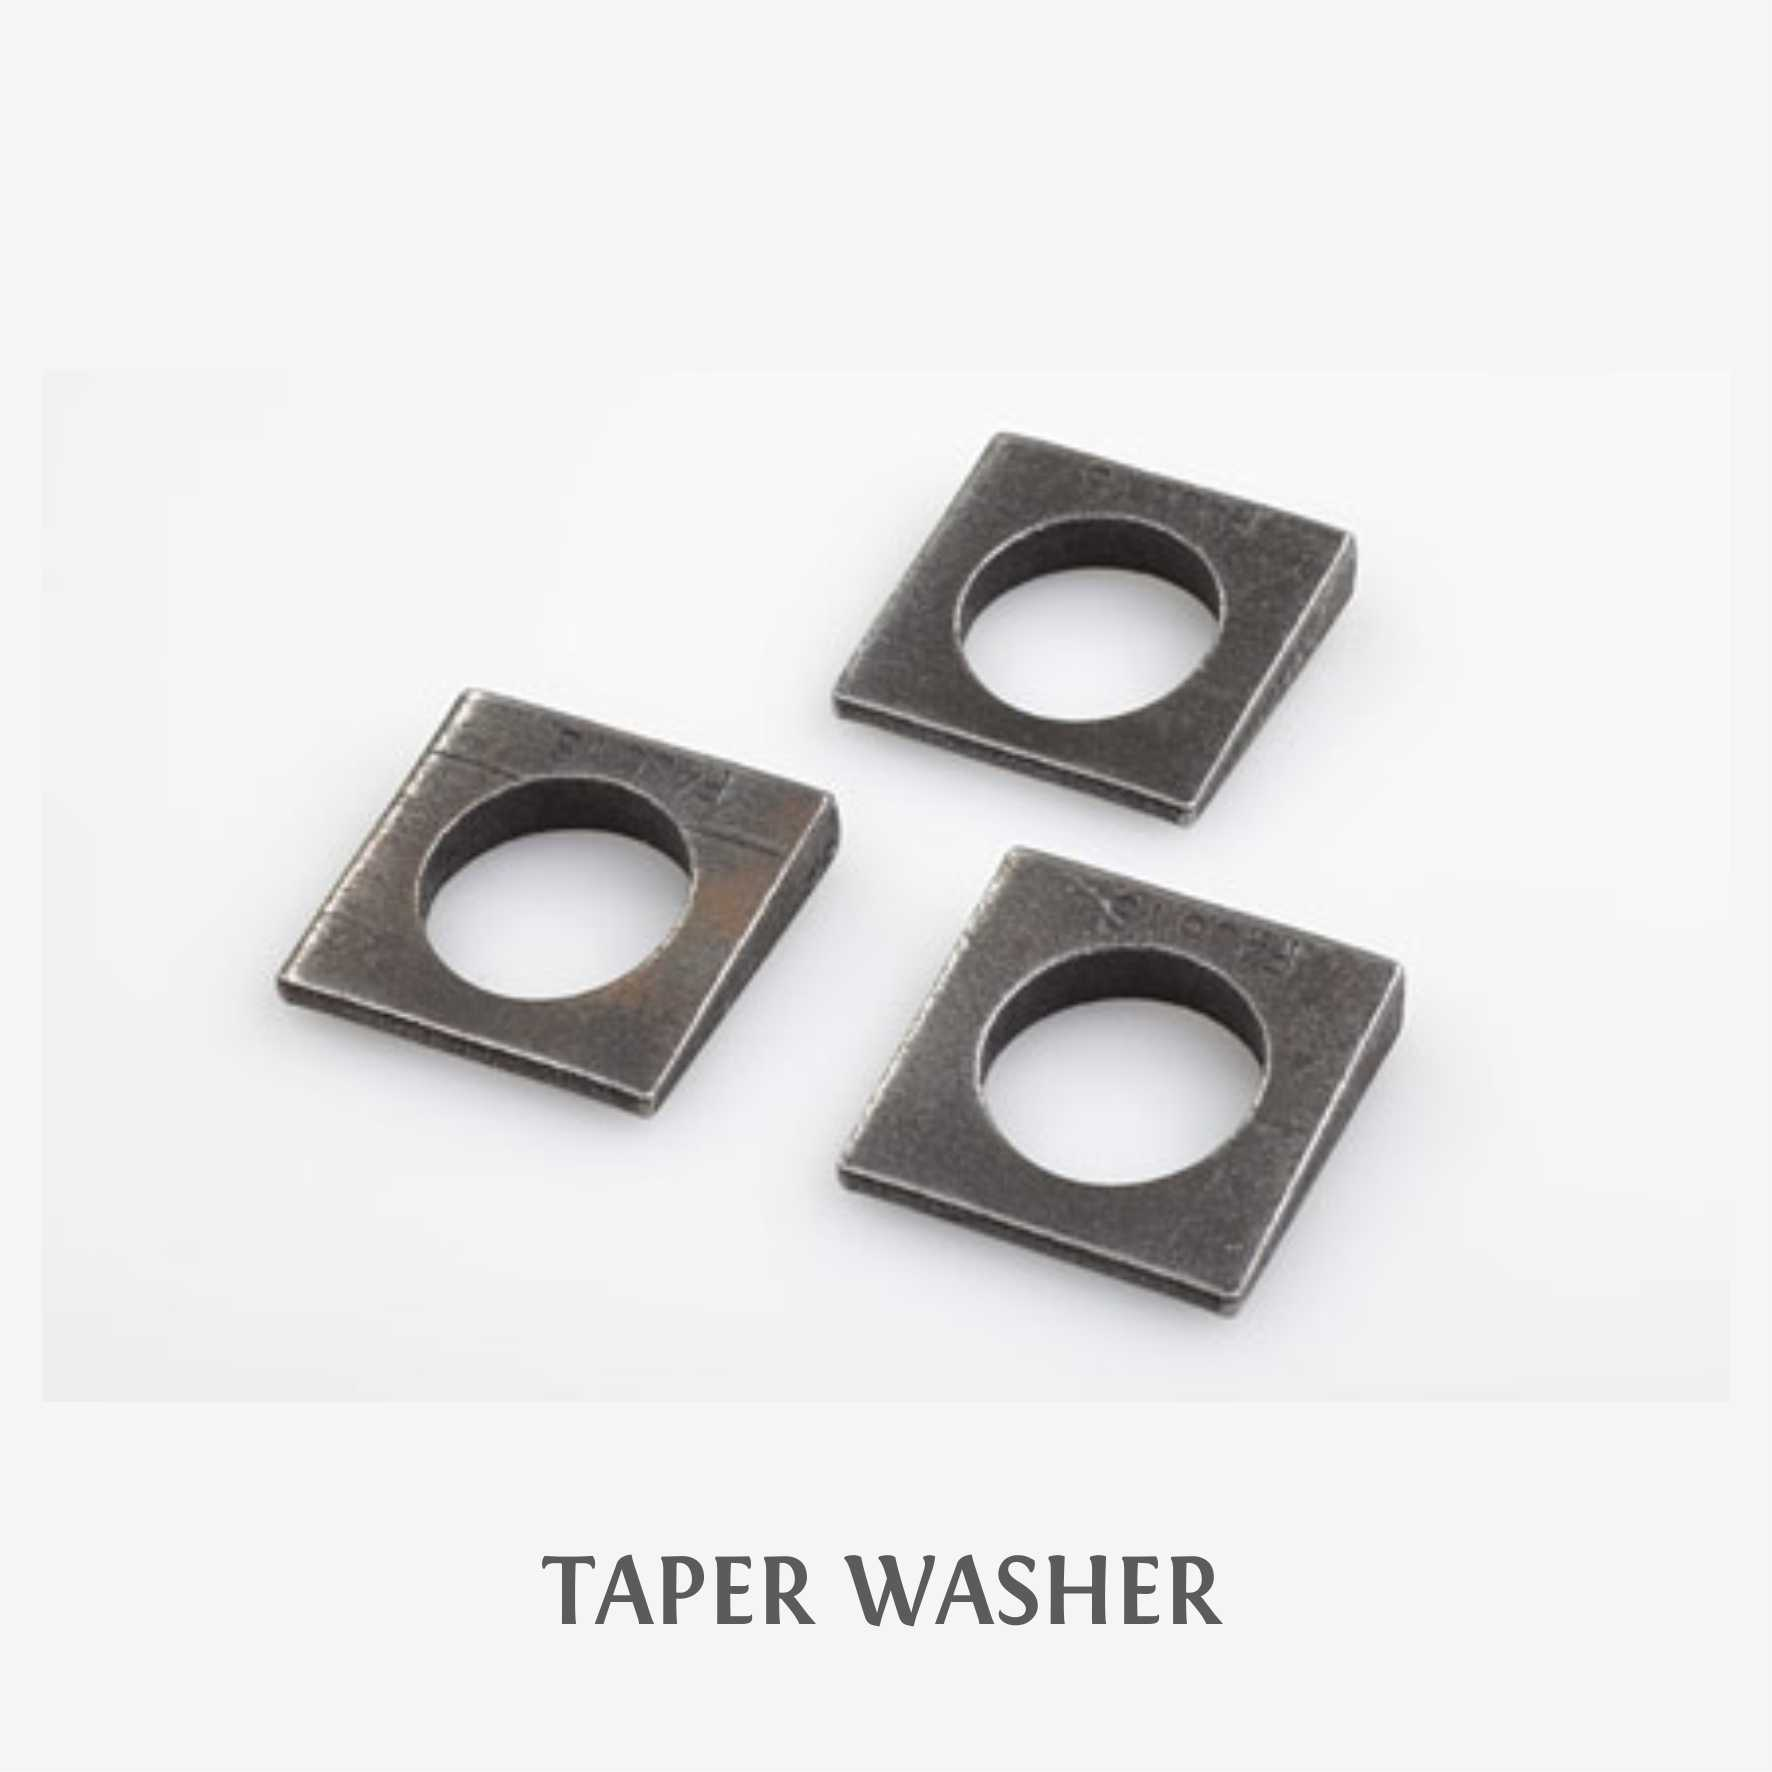 5-TAPER WASHER